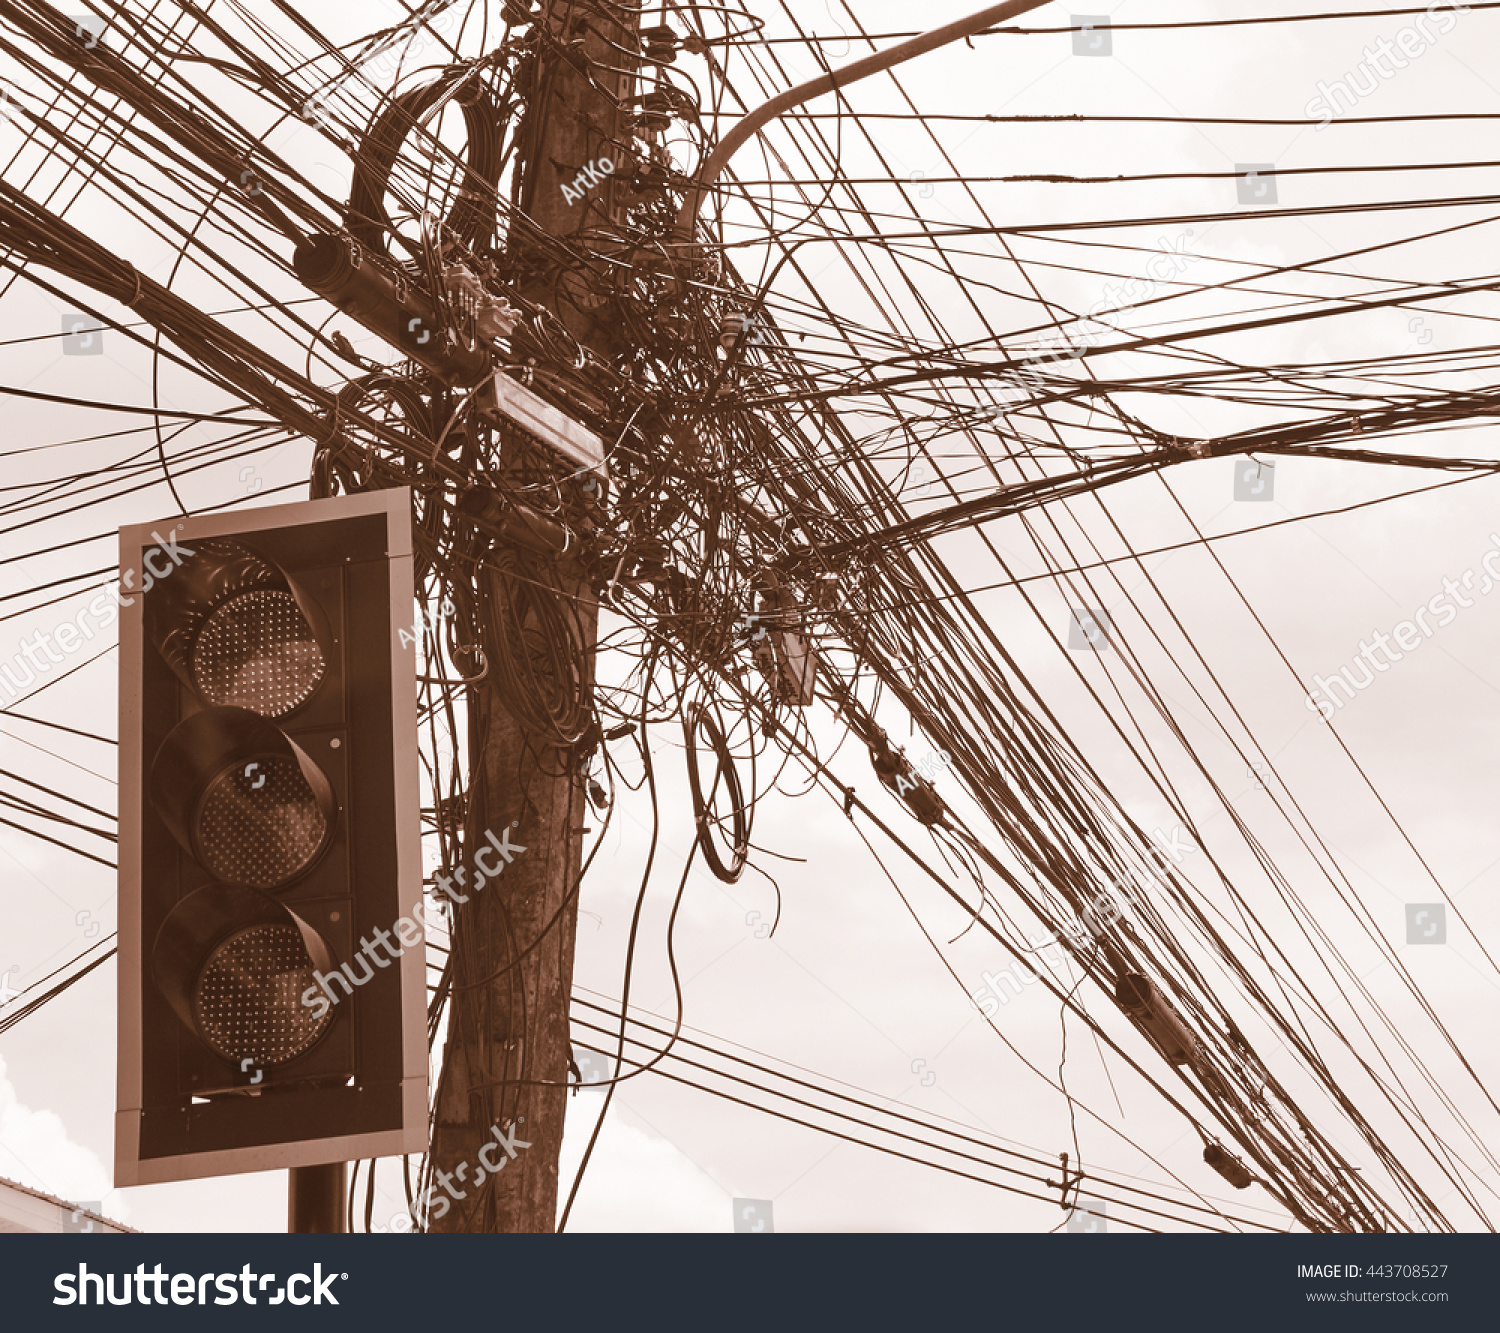 Ship Electrical Wiring And Light Royalty Free Stock Photos Image Messy Tangled Cables 443708527